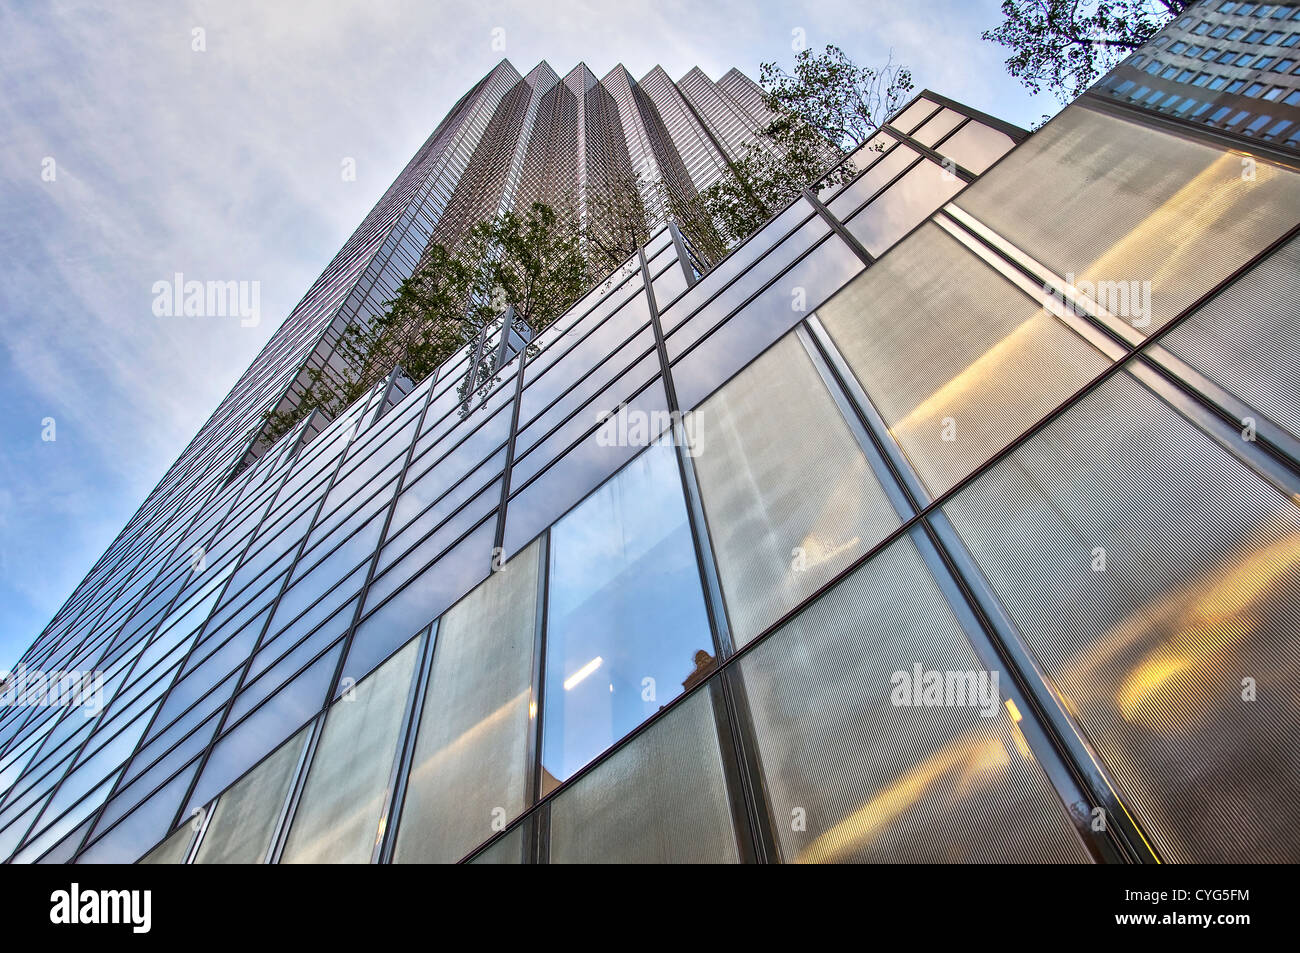 The Trump tower on the 5th avenue, view from below - Manhattan, New York, USA - Stock Image